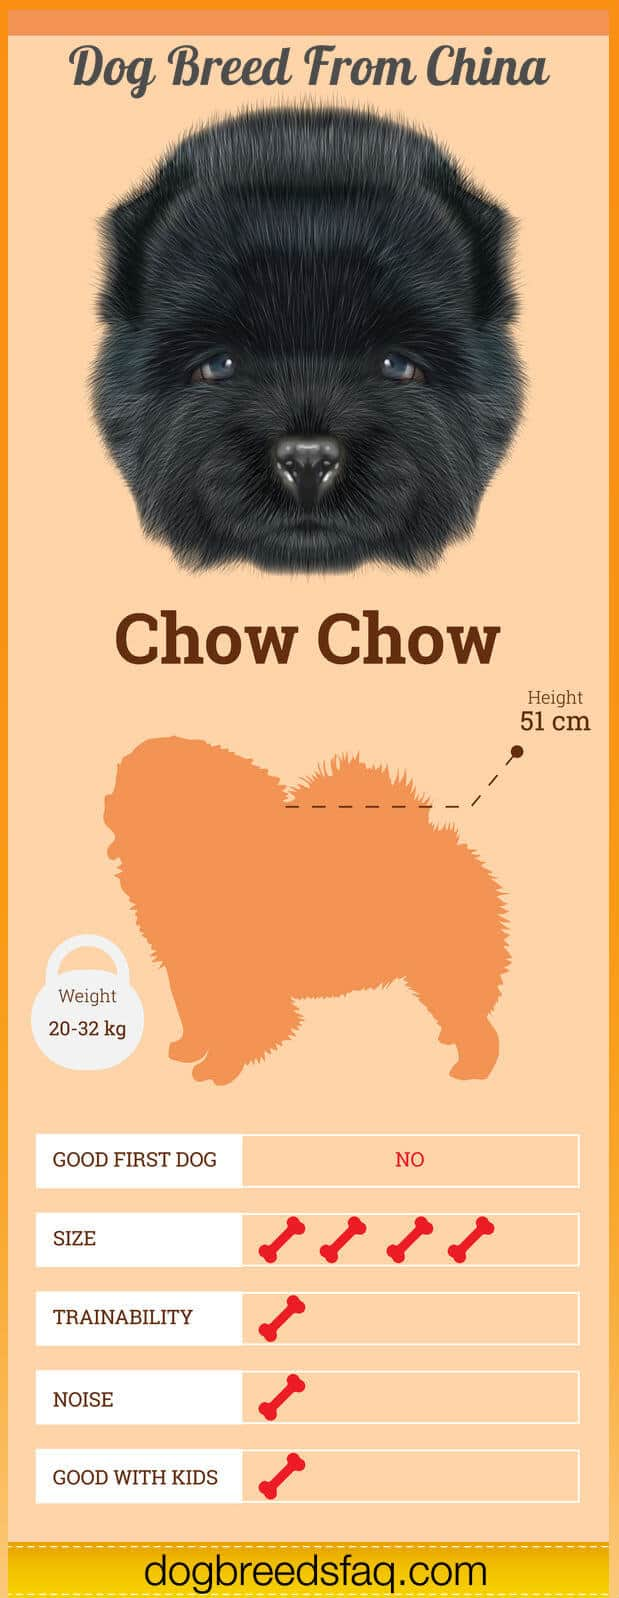 Chow Chow Dog breed Infographic